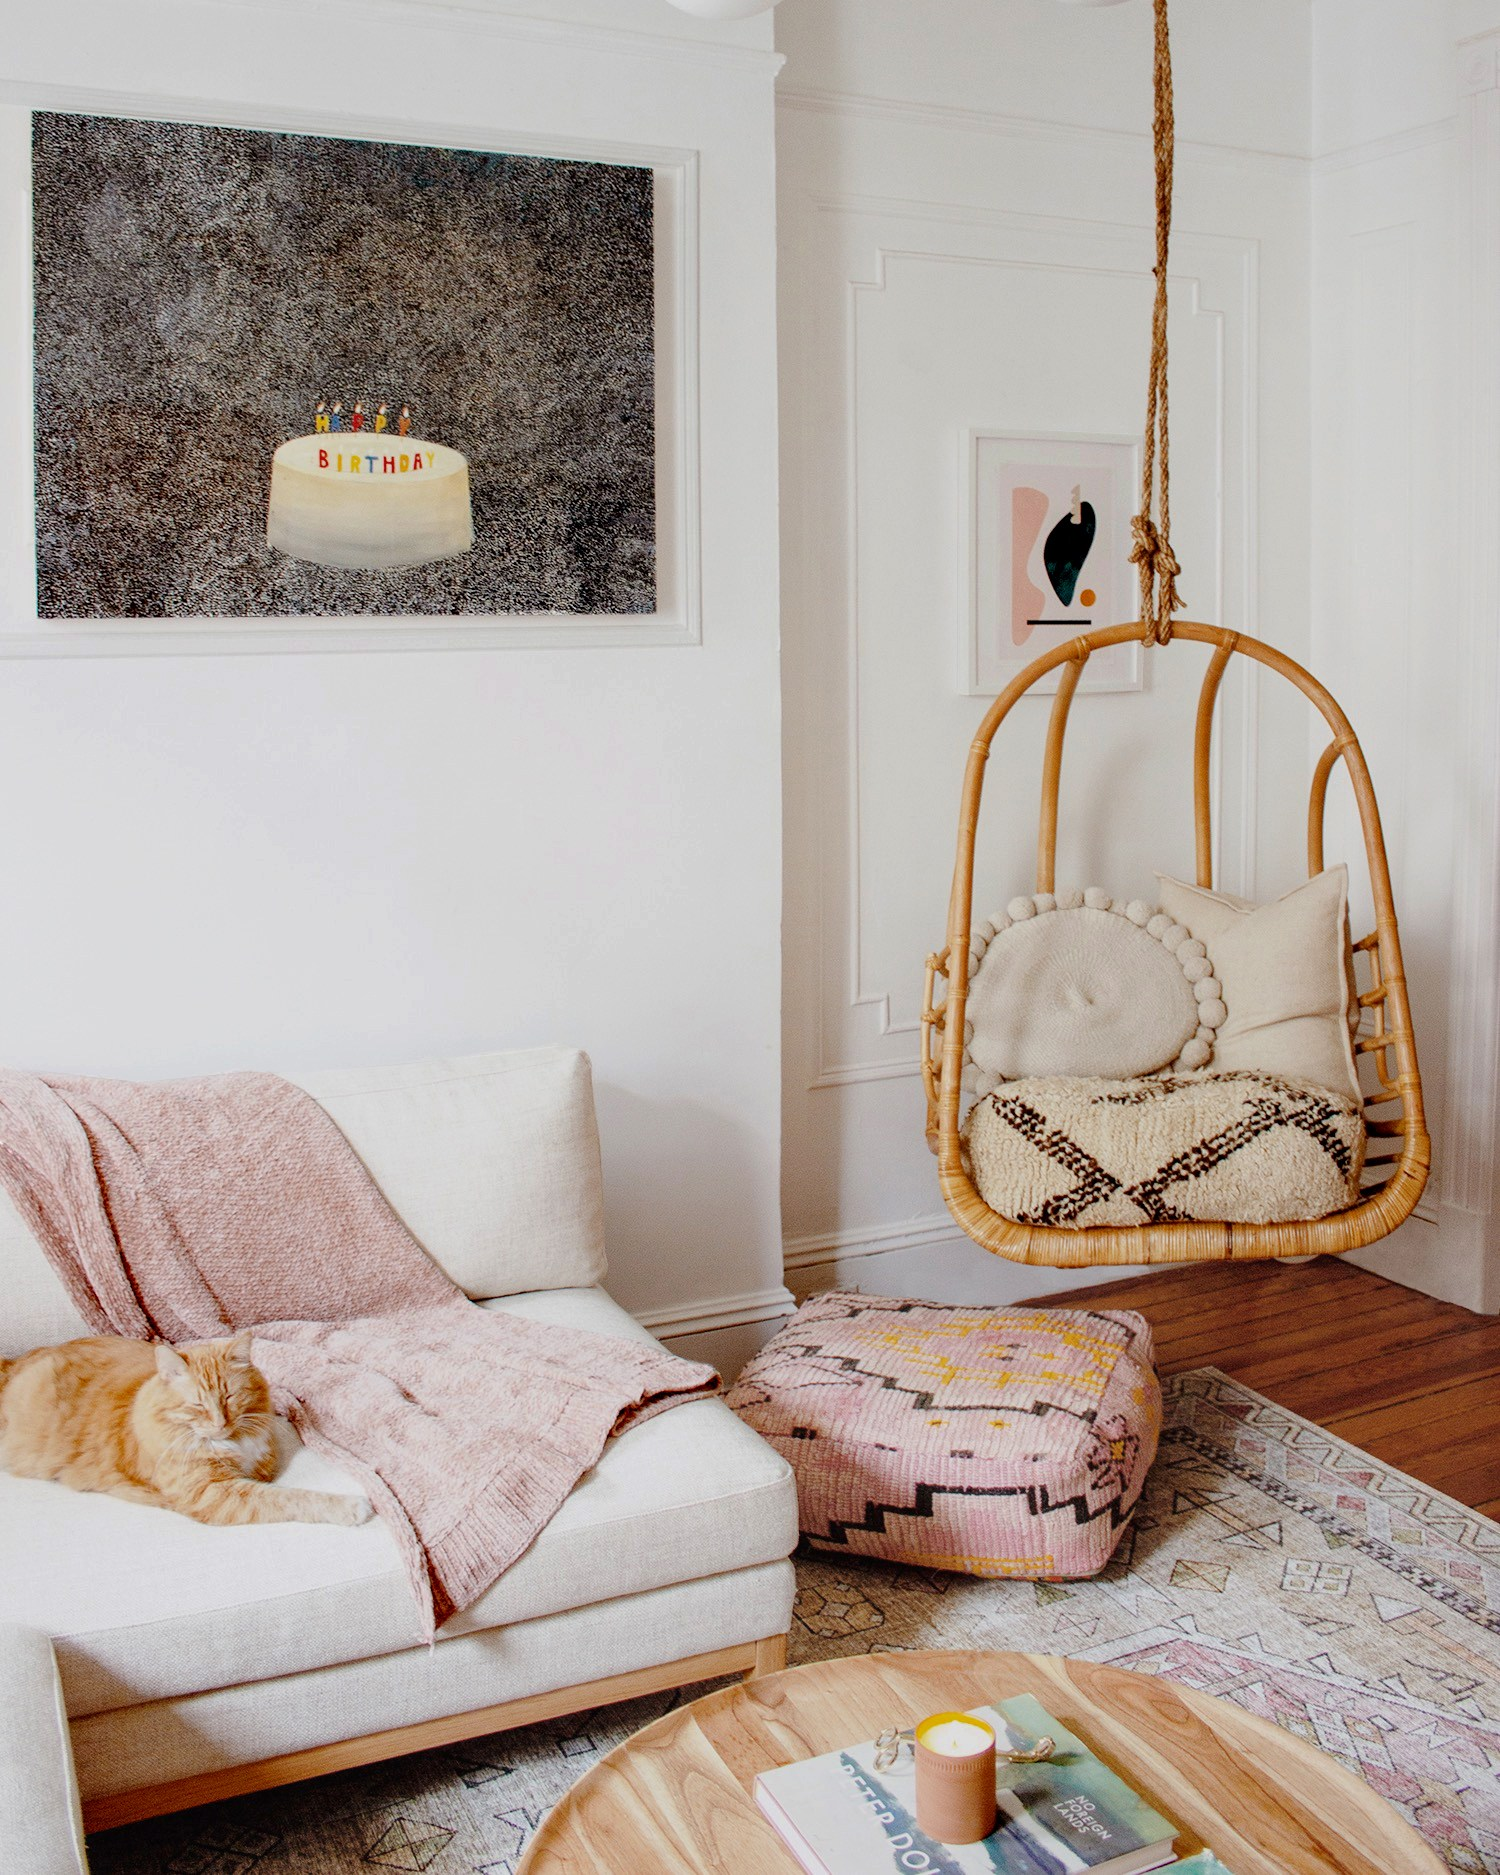 The gorgeous textiles that can be found in every room are carefully selected art pieces themselves, all selected by Mallory from @reserve_home.